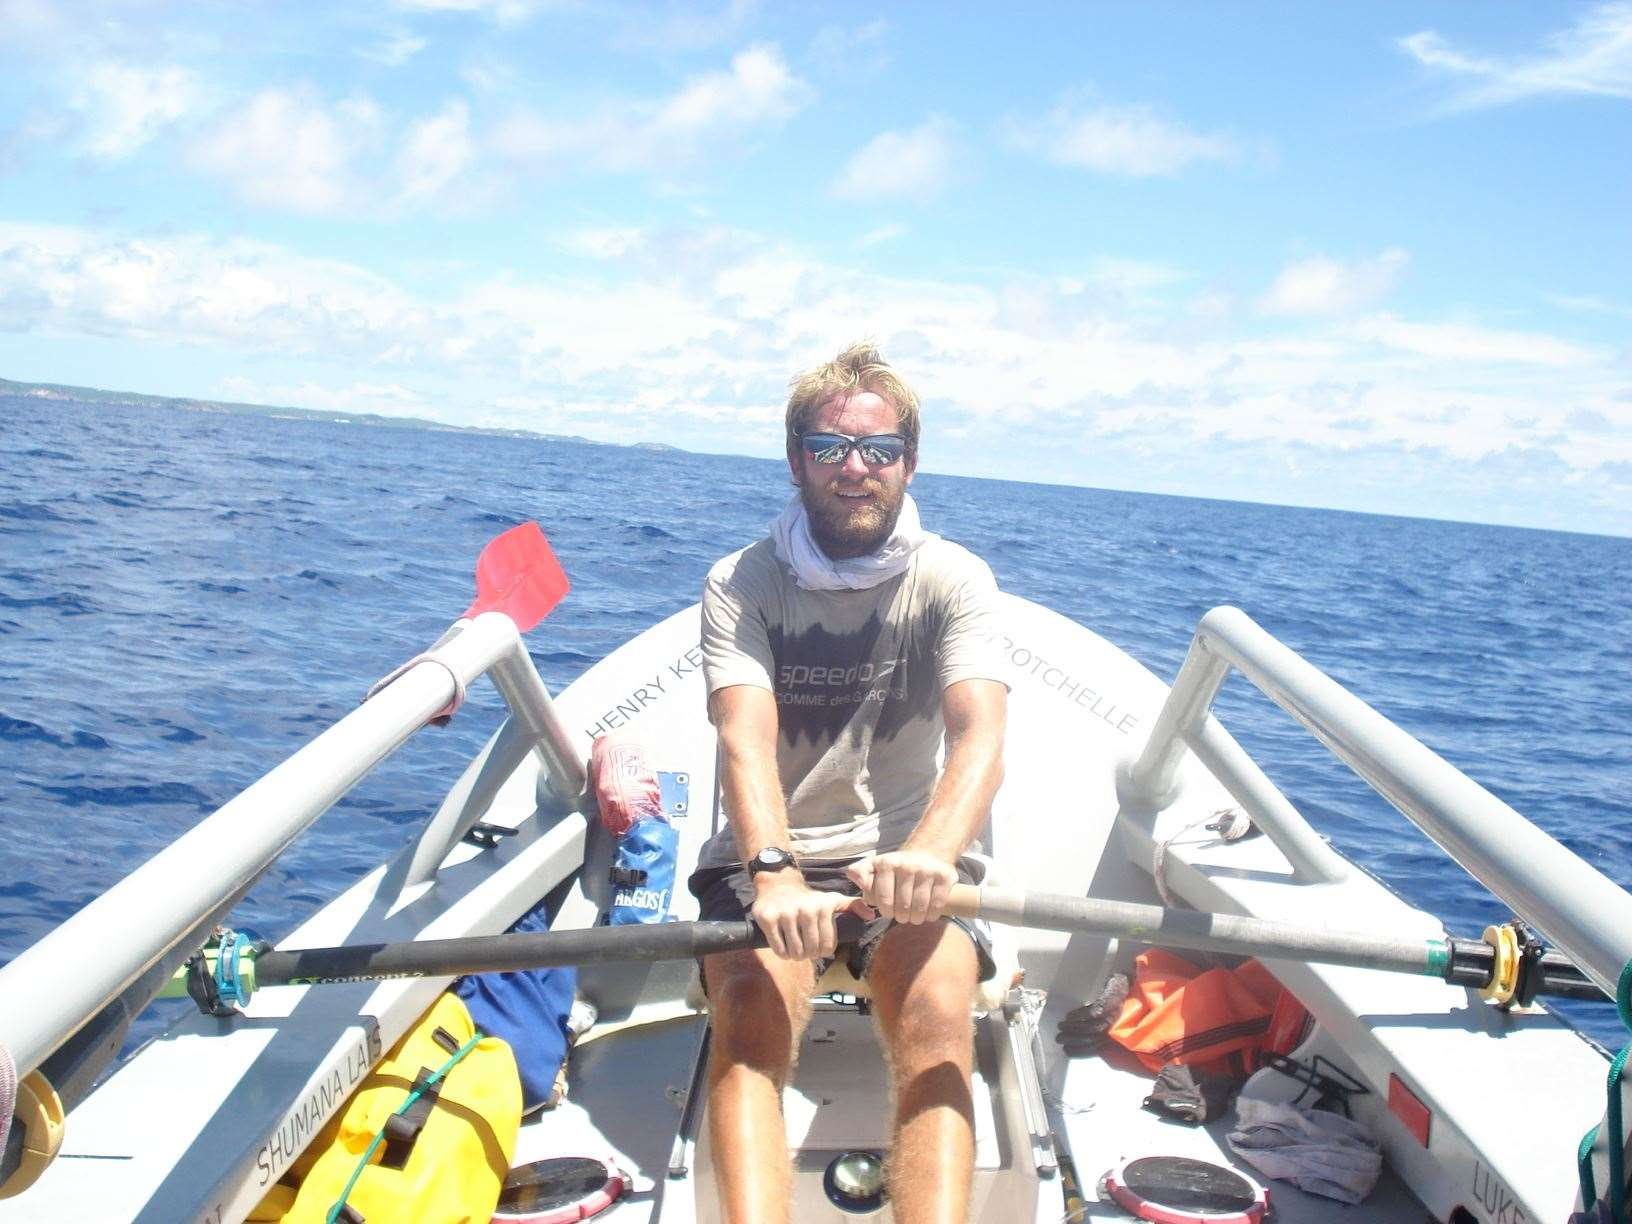 James Ketchell has rowed the Atlantic